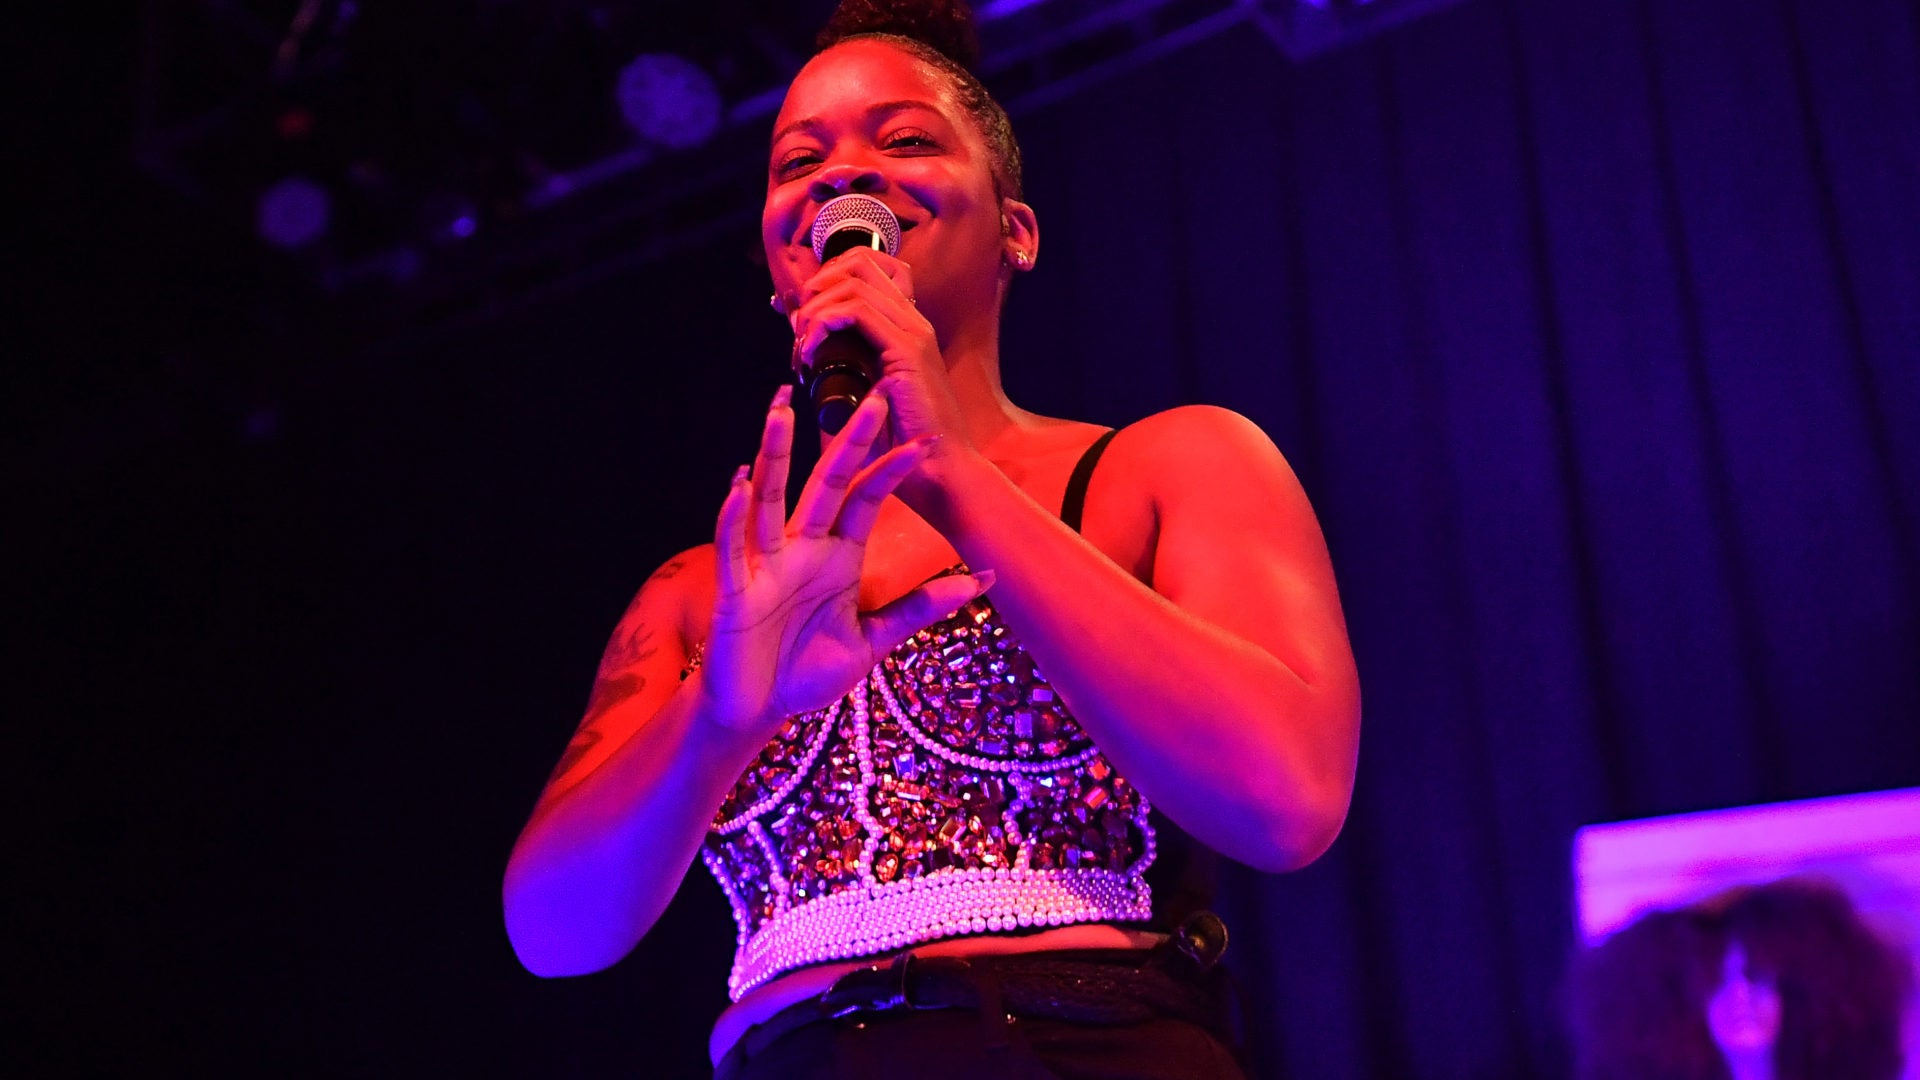 Ari Lennox Hopes New Music Provides 'A Little Happiness' To The World